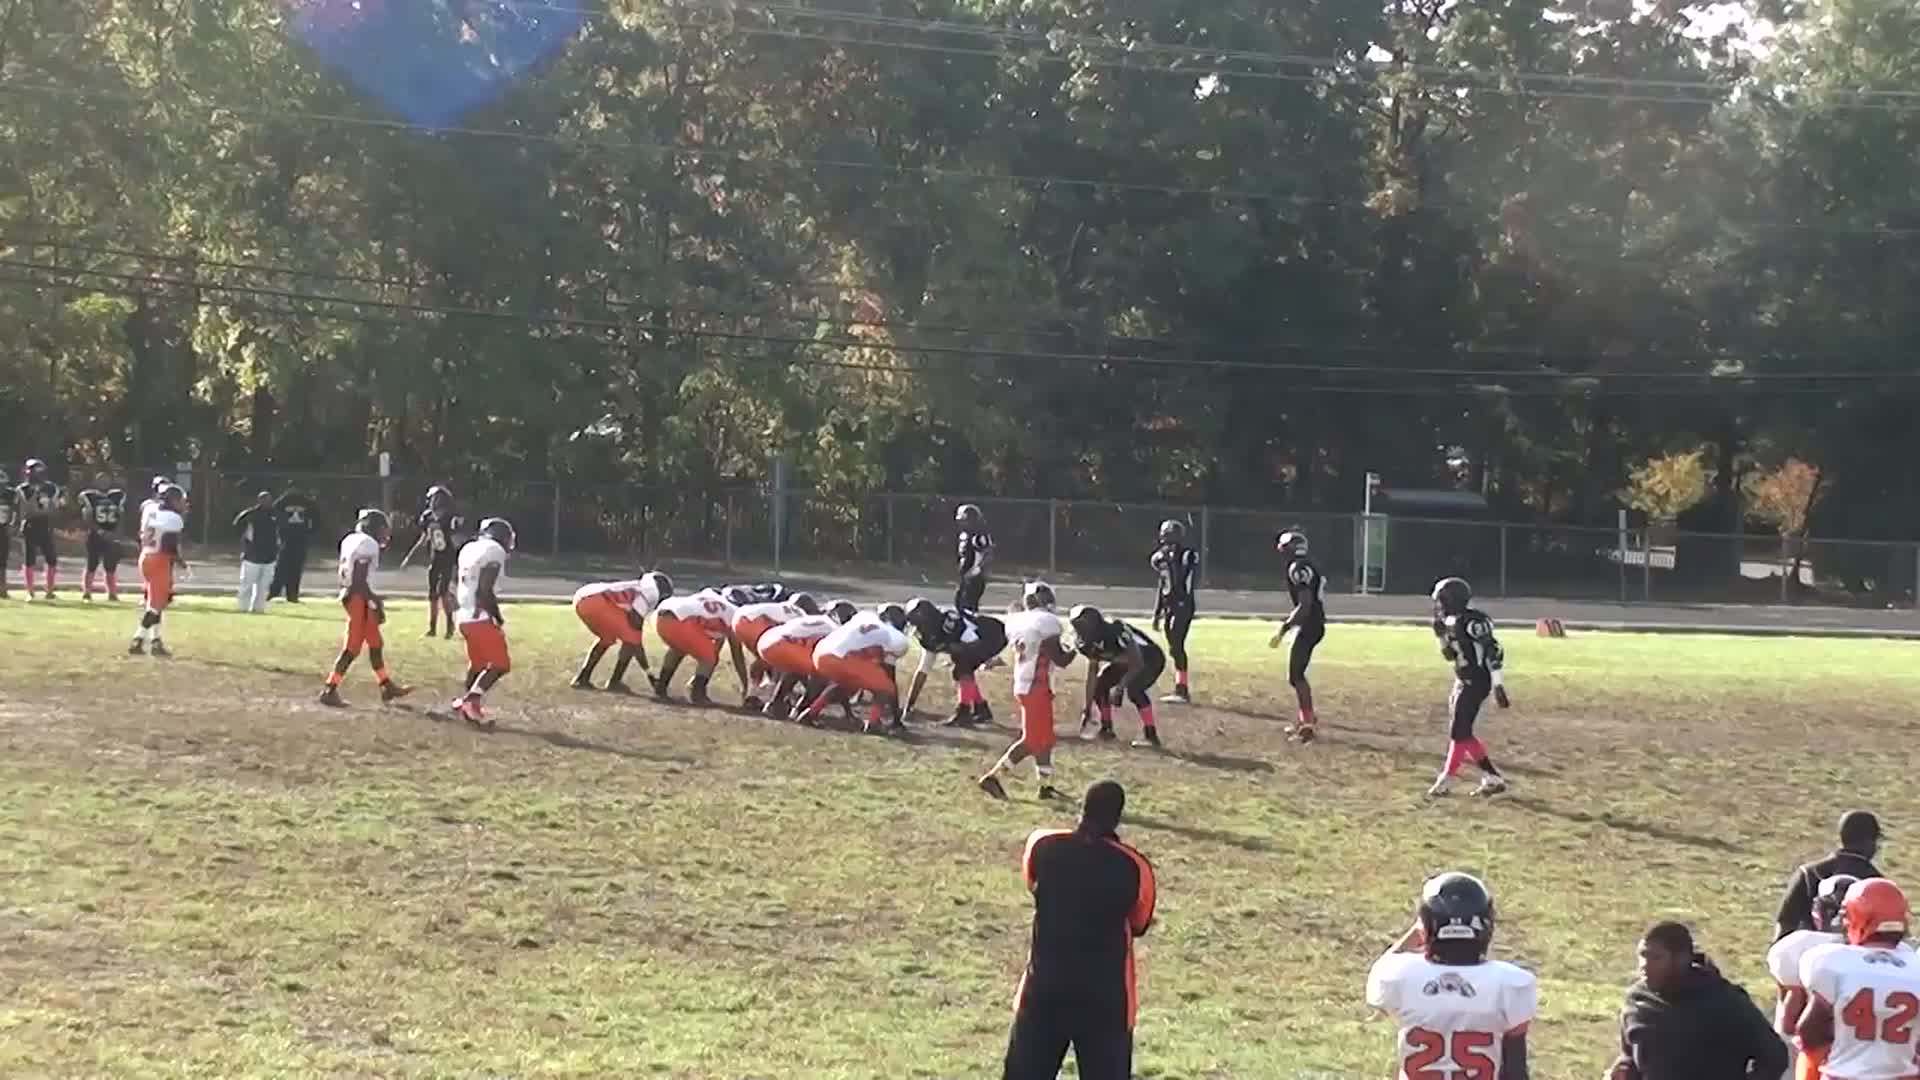 vs. Oxon Hill High School - David Dupree highlights - Hudl